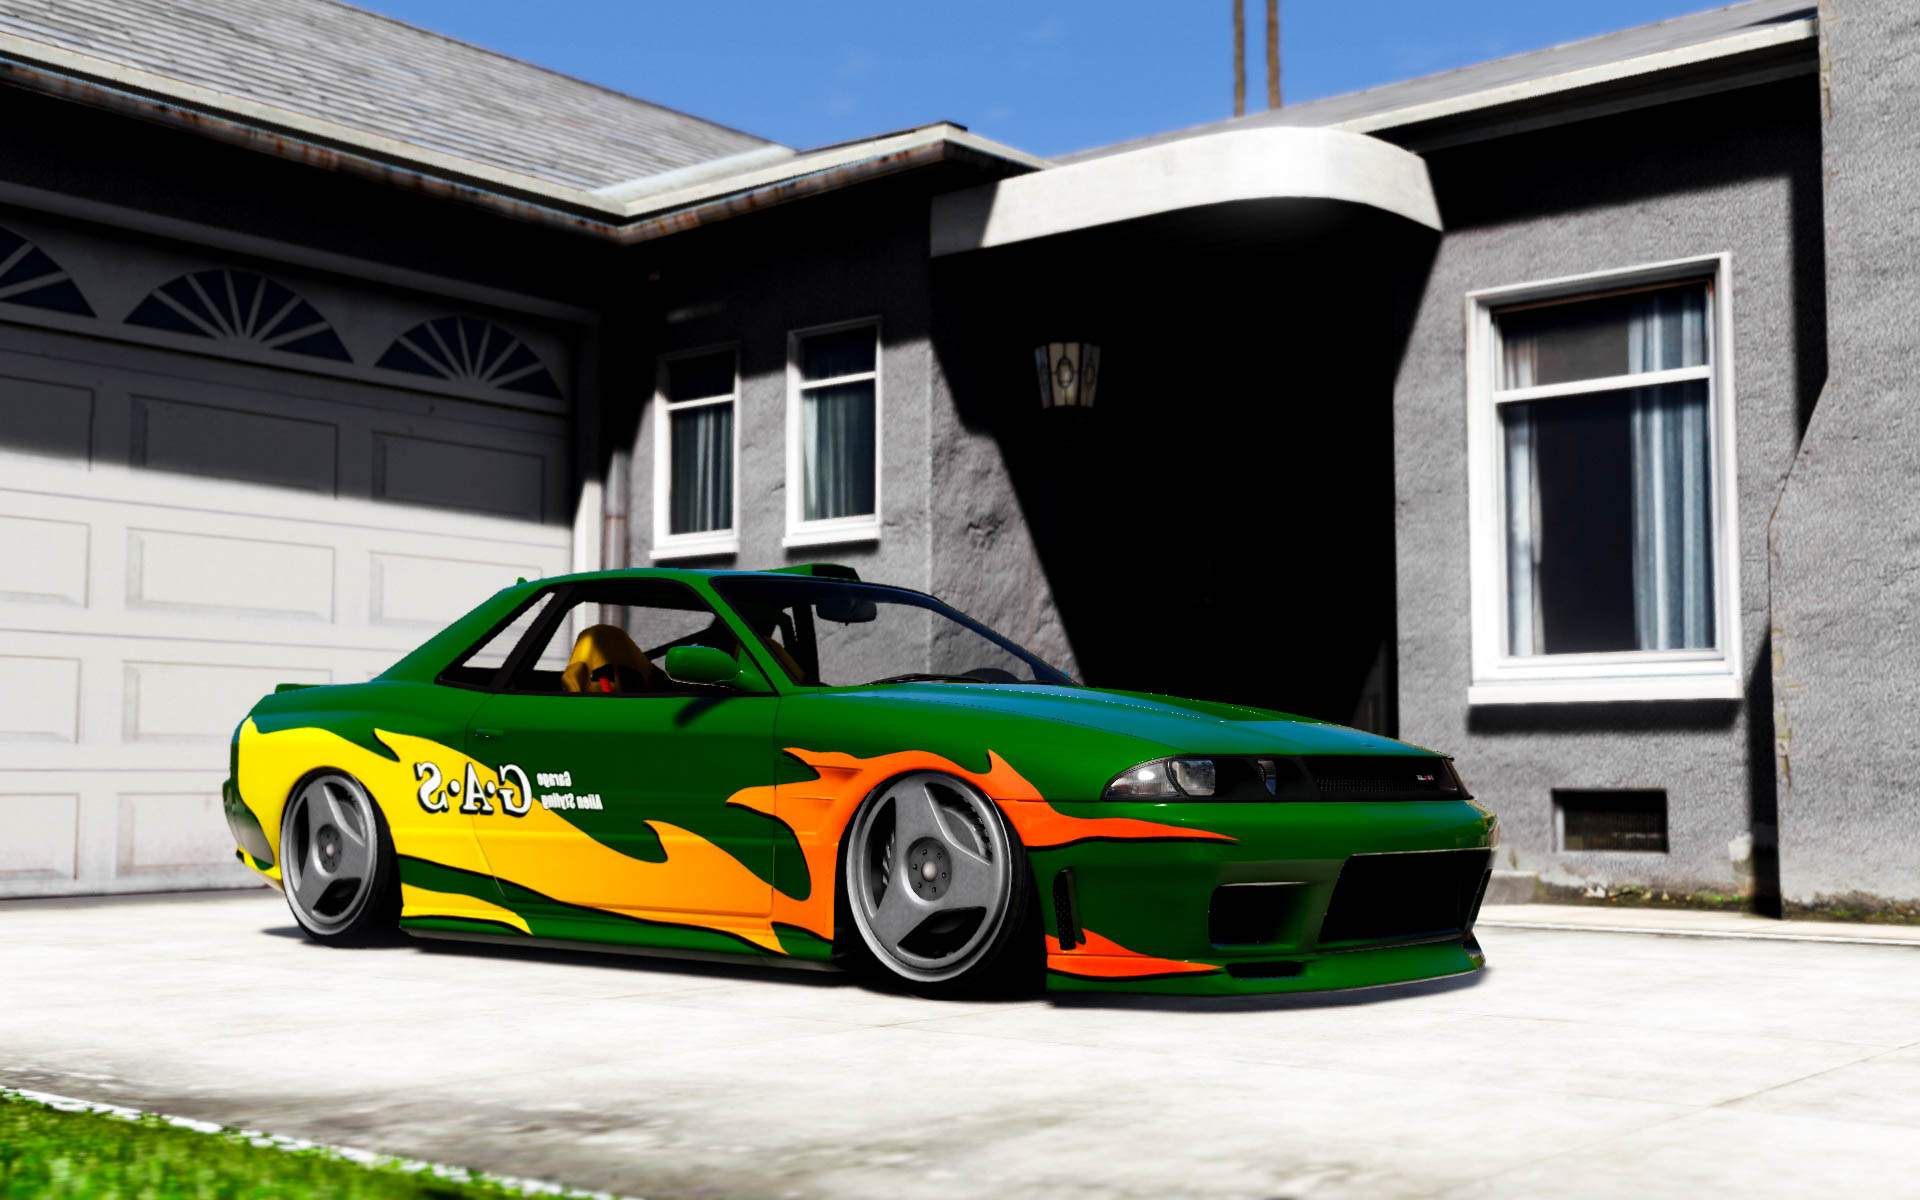 Garage alien styling elegy pack gta5 for Garage electricite auto 95